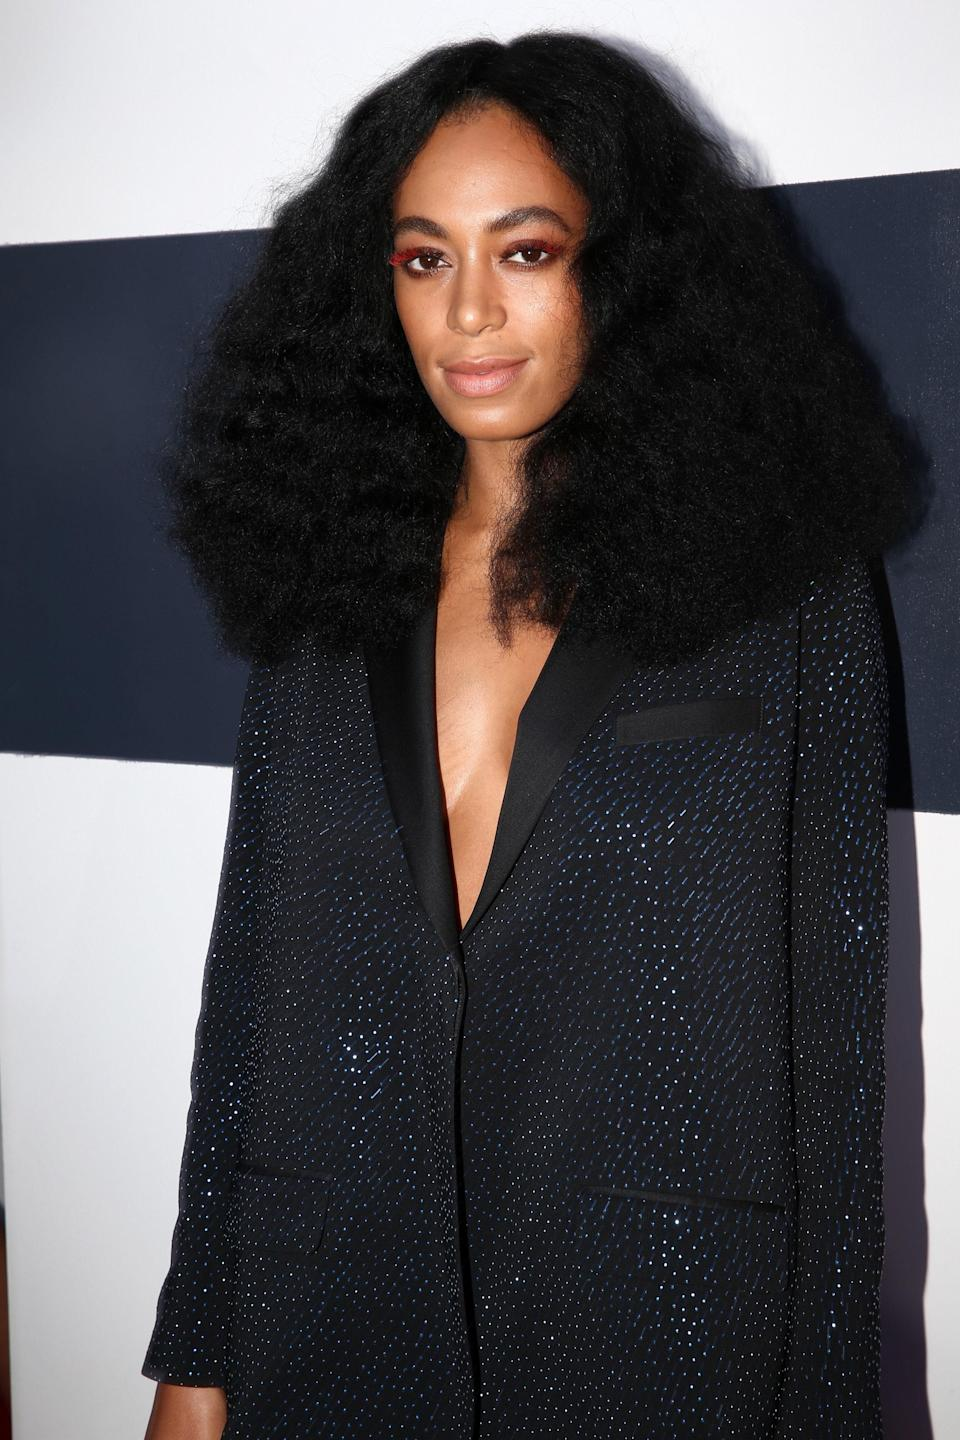 This might <em>look</em> like the standard, stunning Solange you know so well, but take a closer look and you'll see the singer's amazingly subtle orange eyelashes. This wasn't just one of the coolest moments of the 2014 VMAs, it was one of the awards' best beauty moments ever!